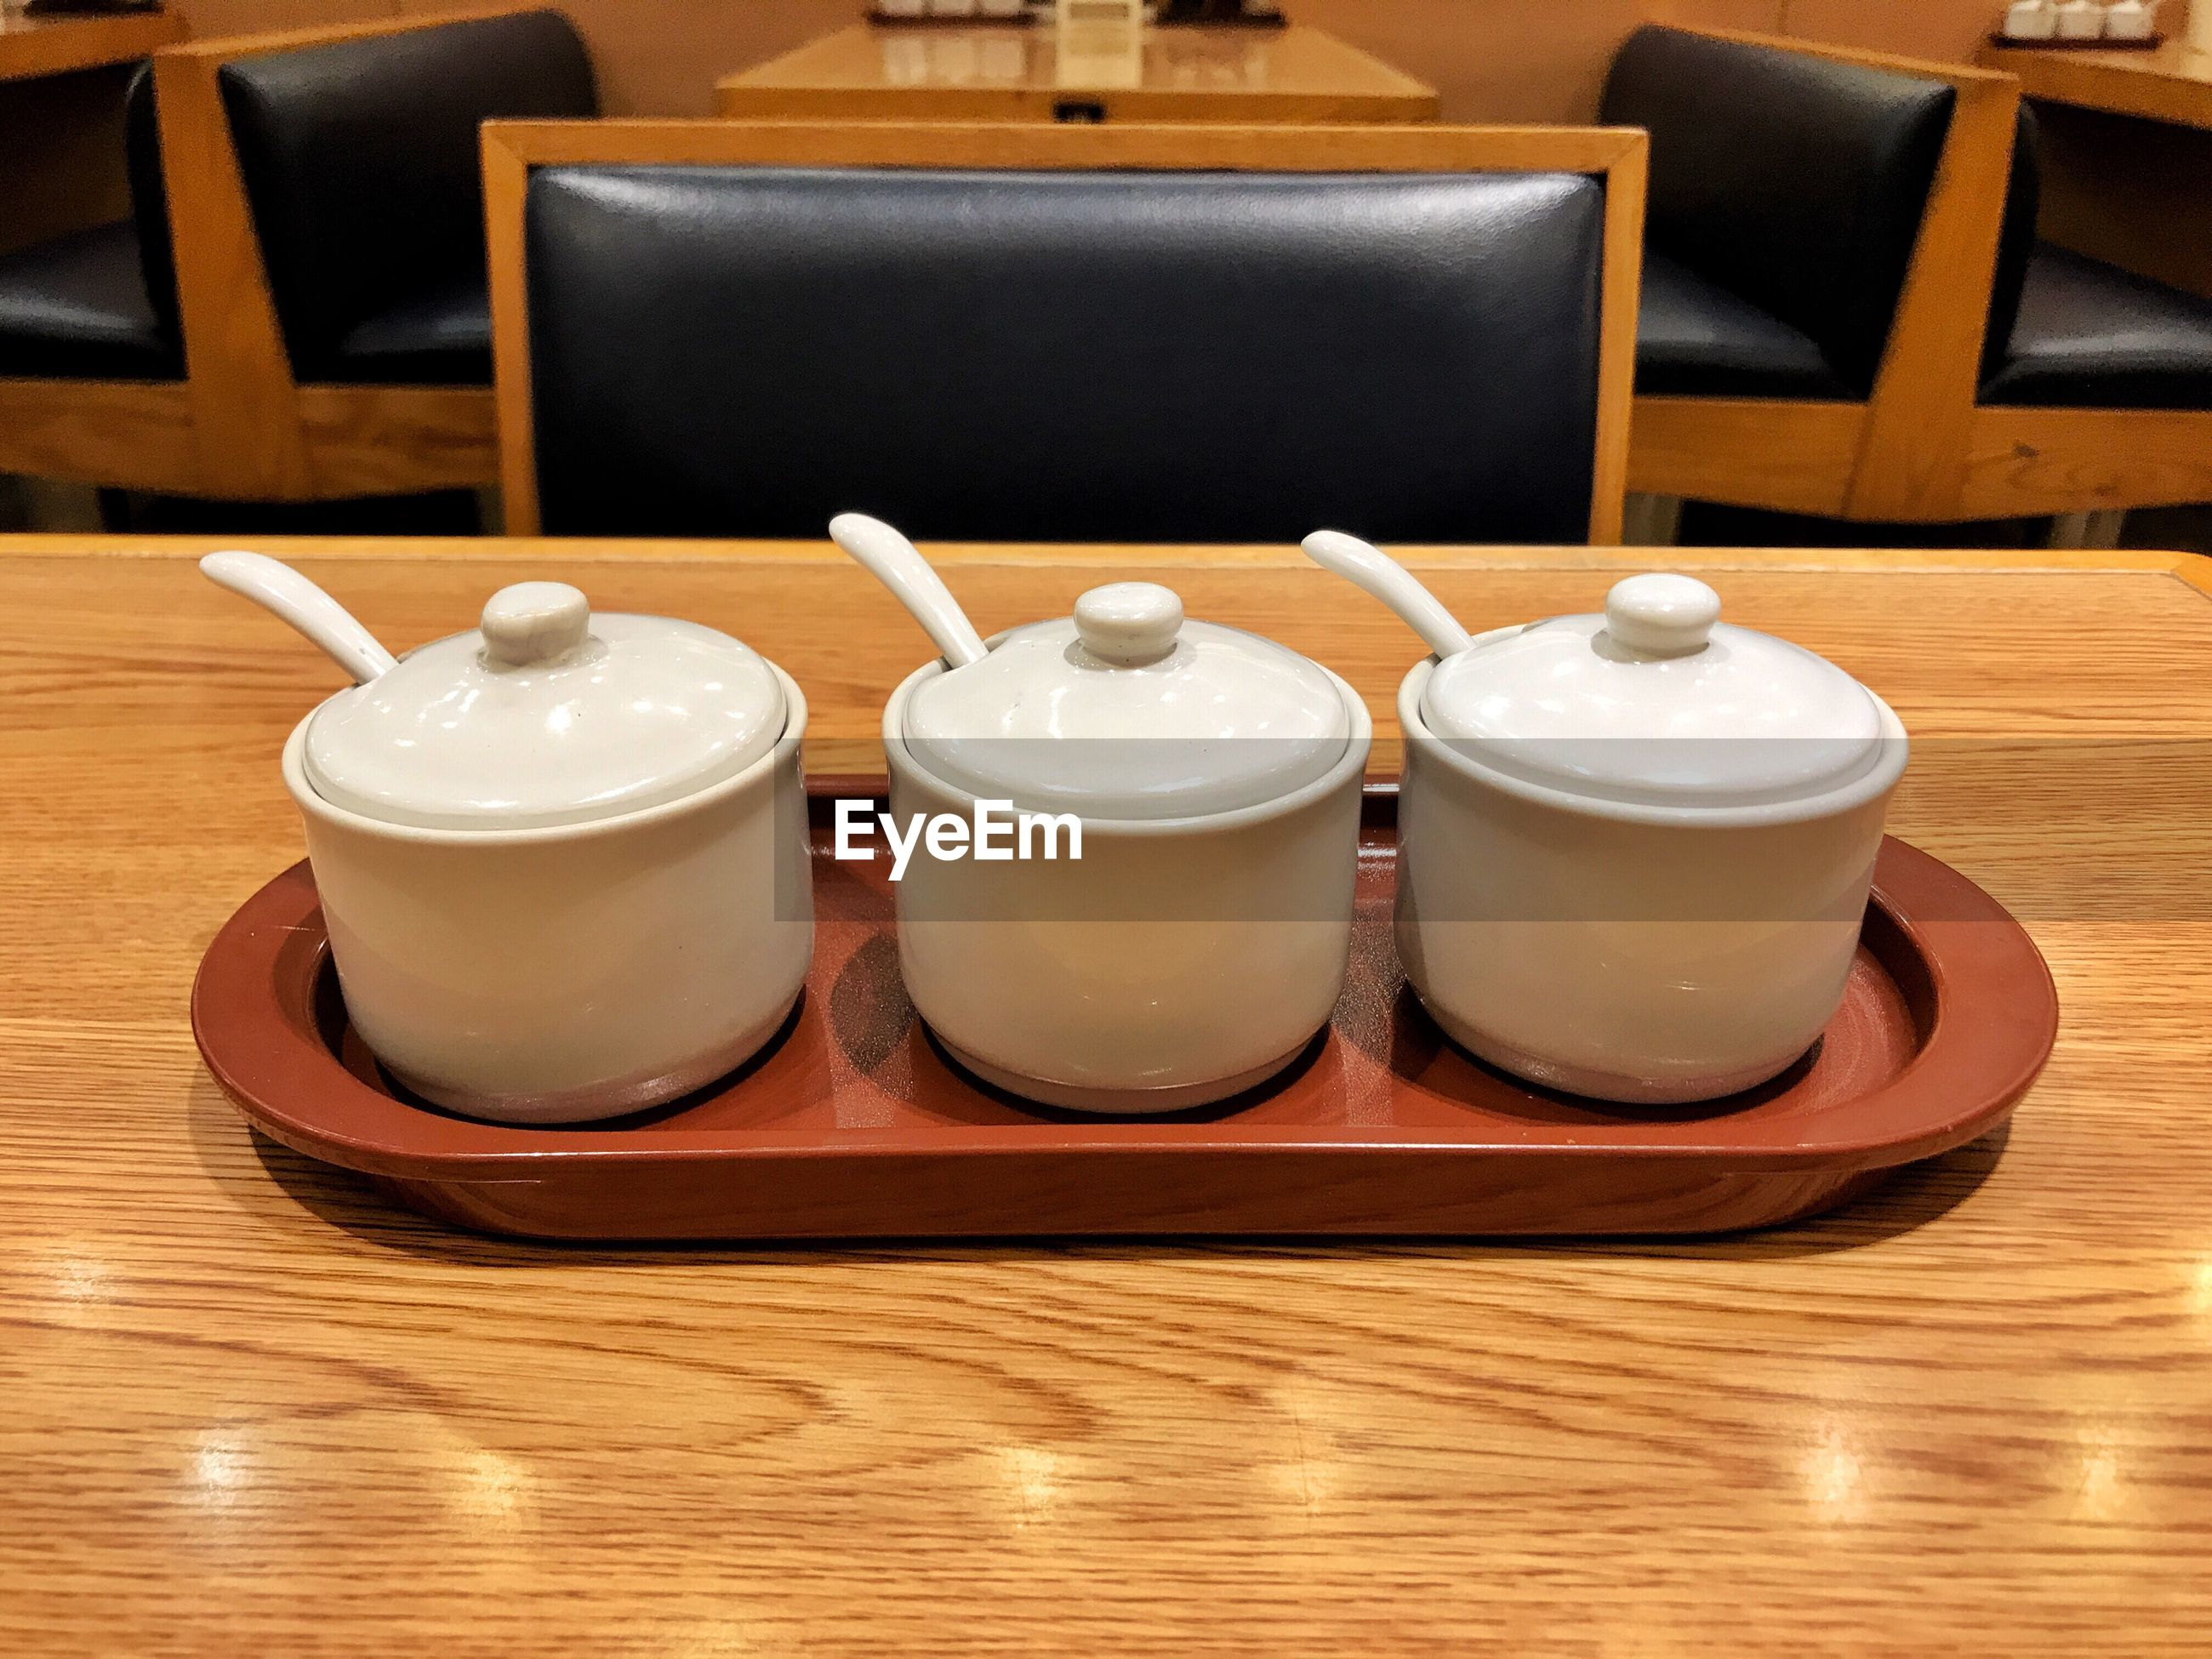 Containers on table in restaurant